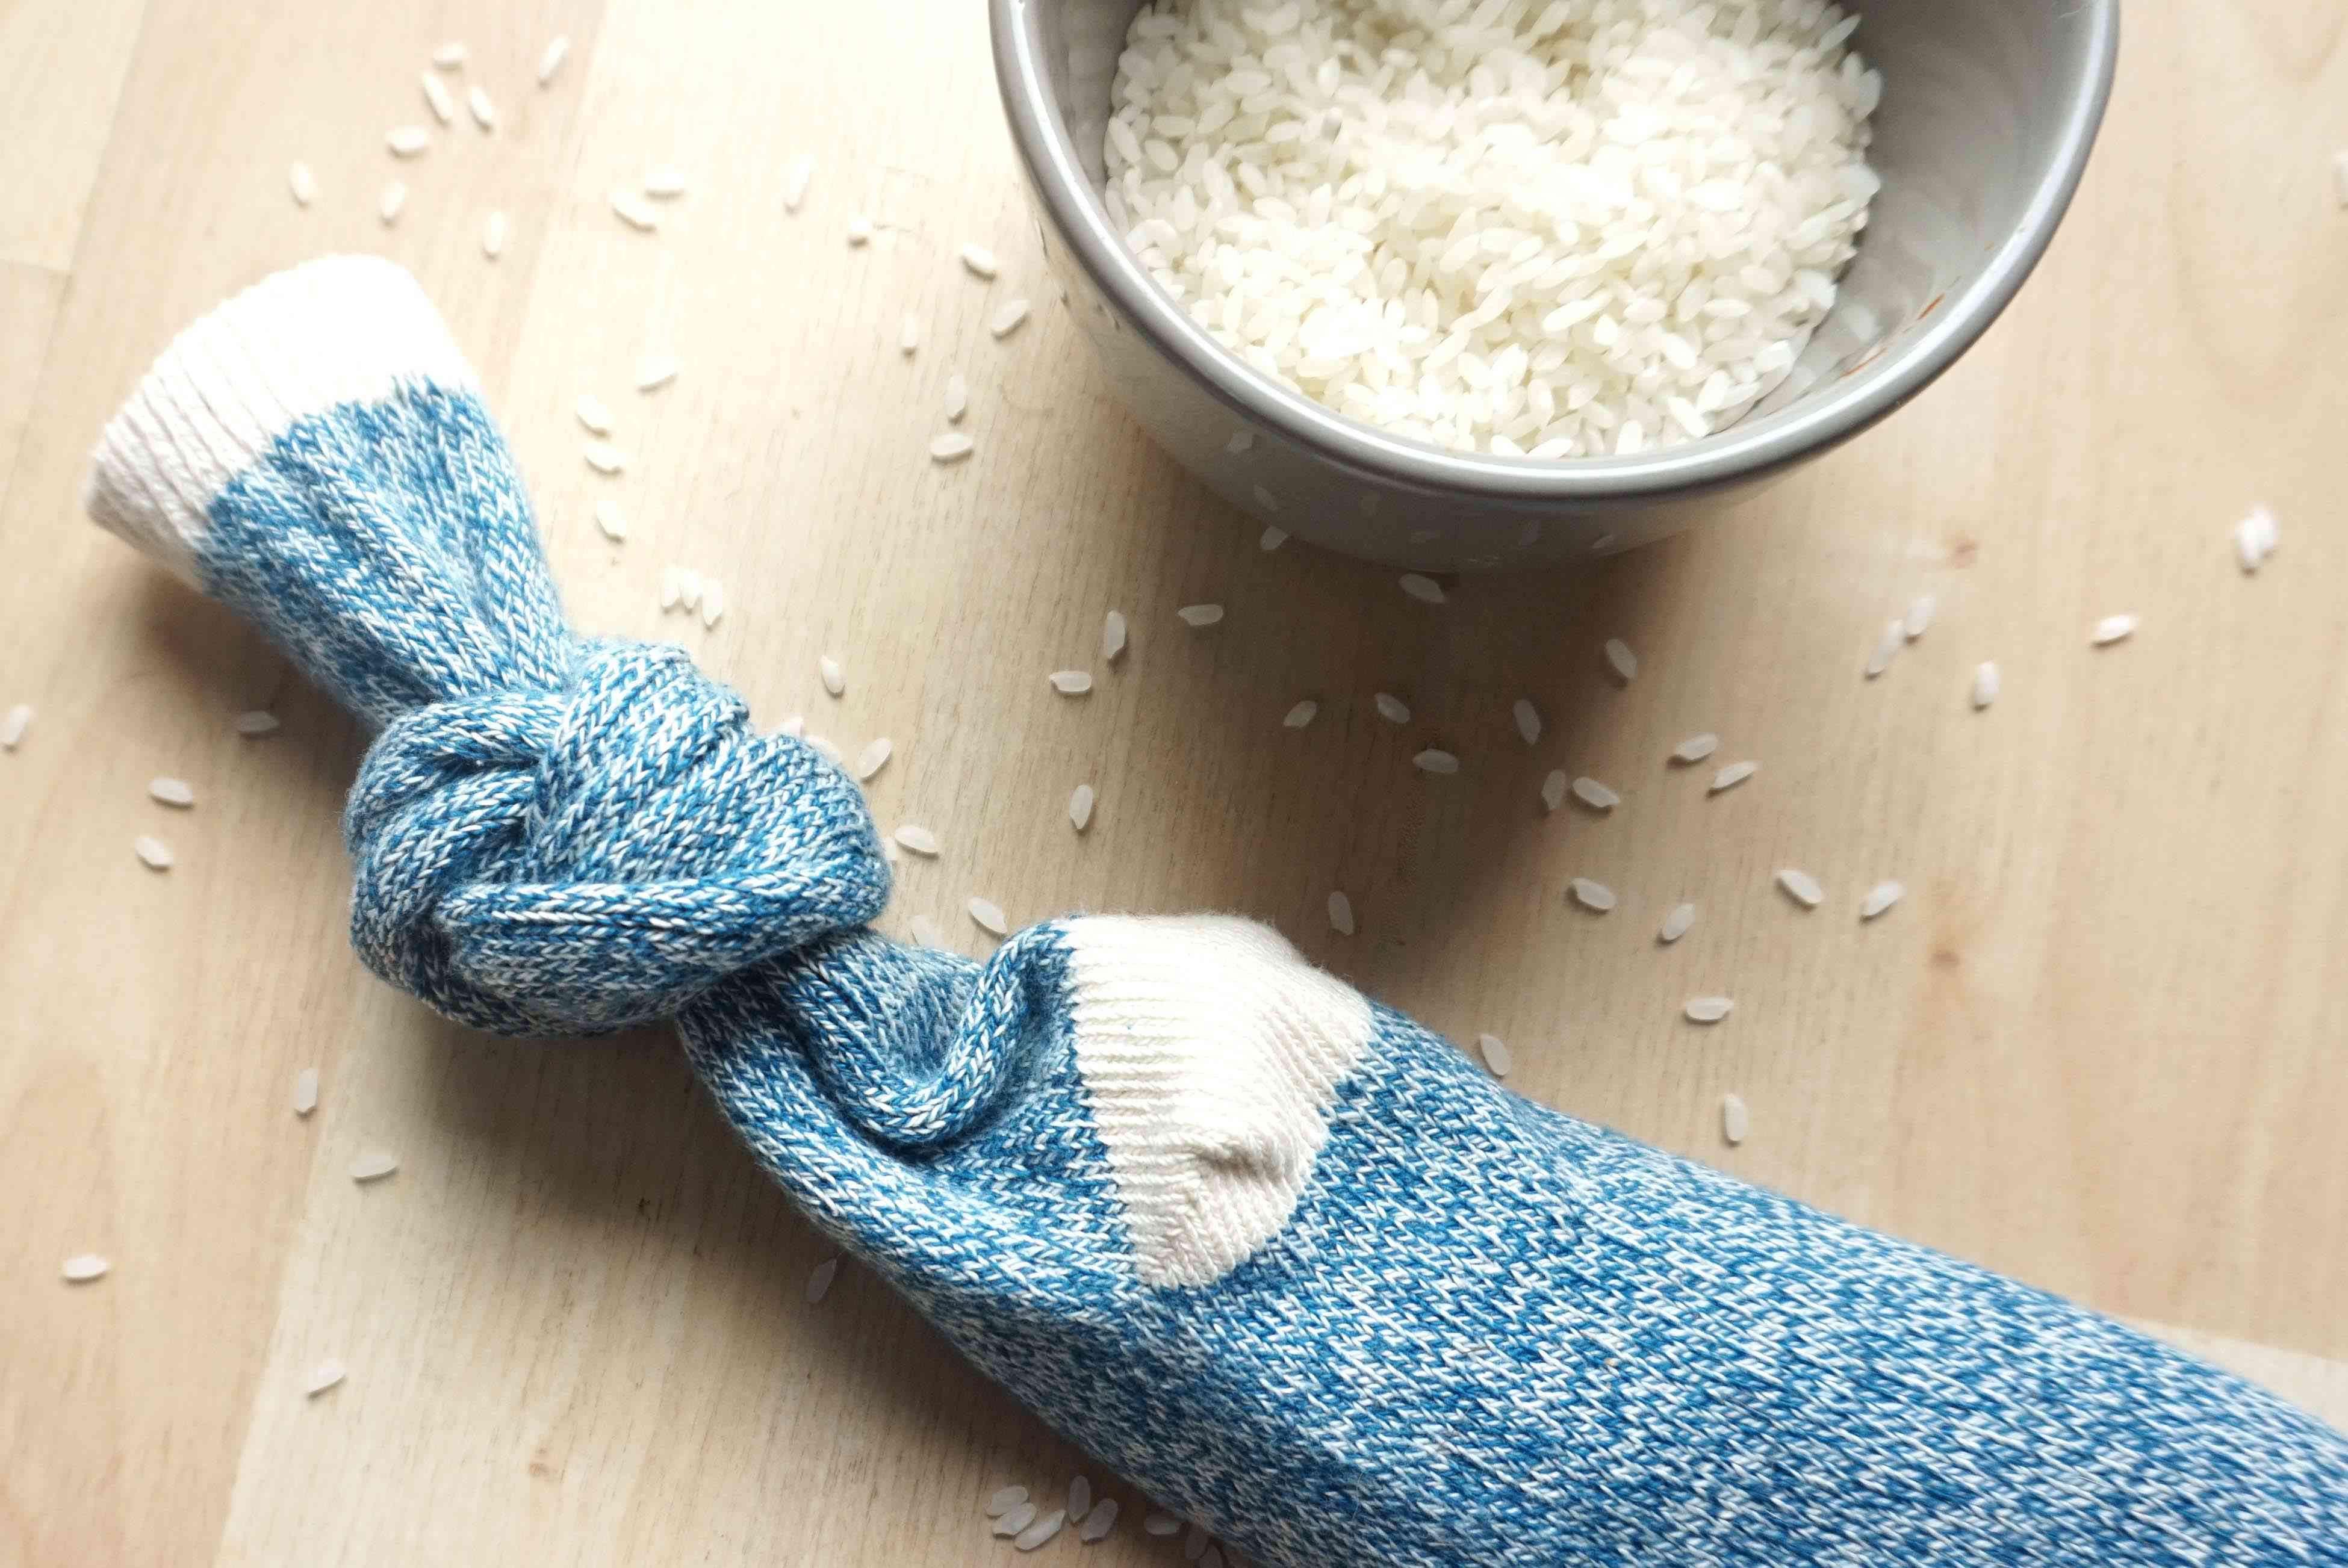 A sock filled with grains of rice and tied closed.